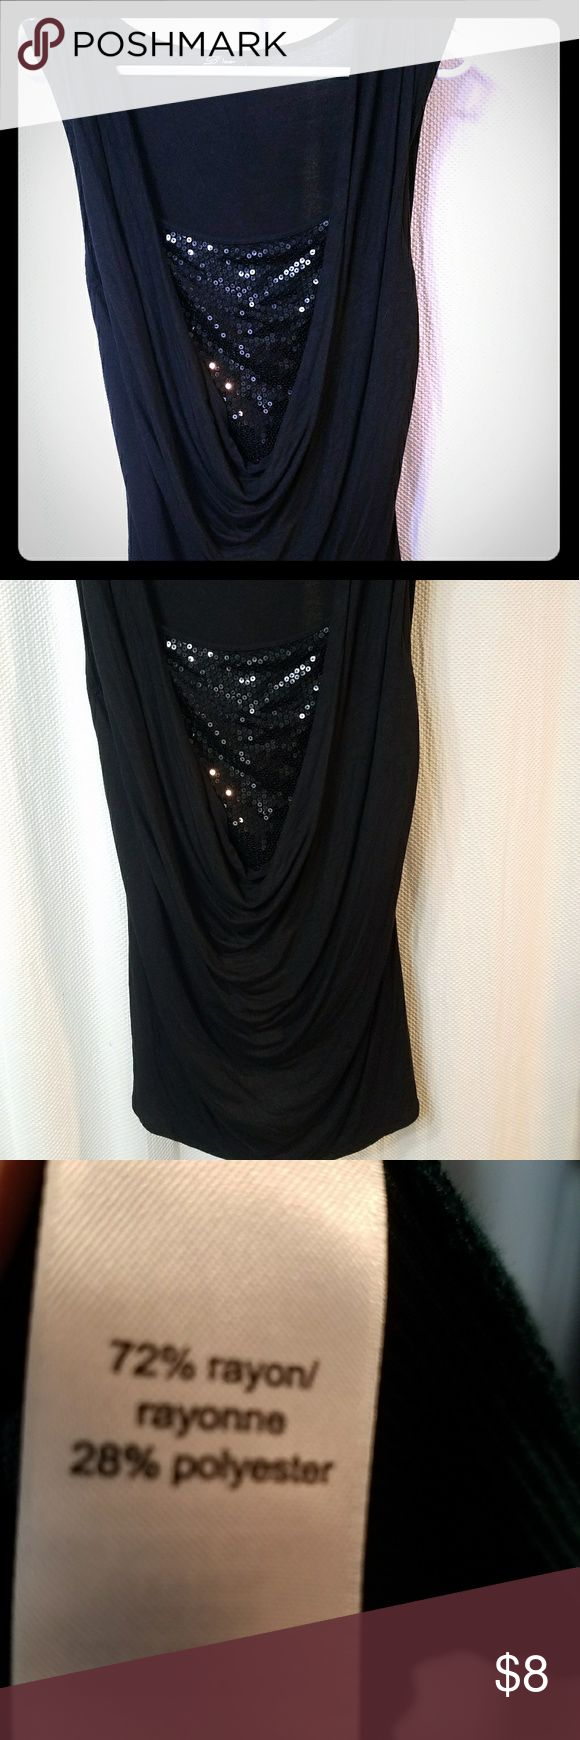 Night on the town sleeveless top. Bundle and save! Sleeveless, black top. Sequins at breast area, front is flowing, back is fitted. Super hot! Brand is B'leve Tops Blouses